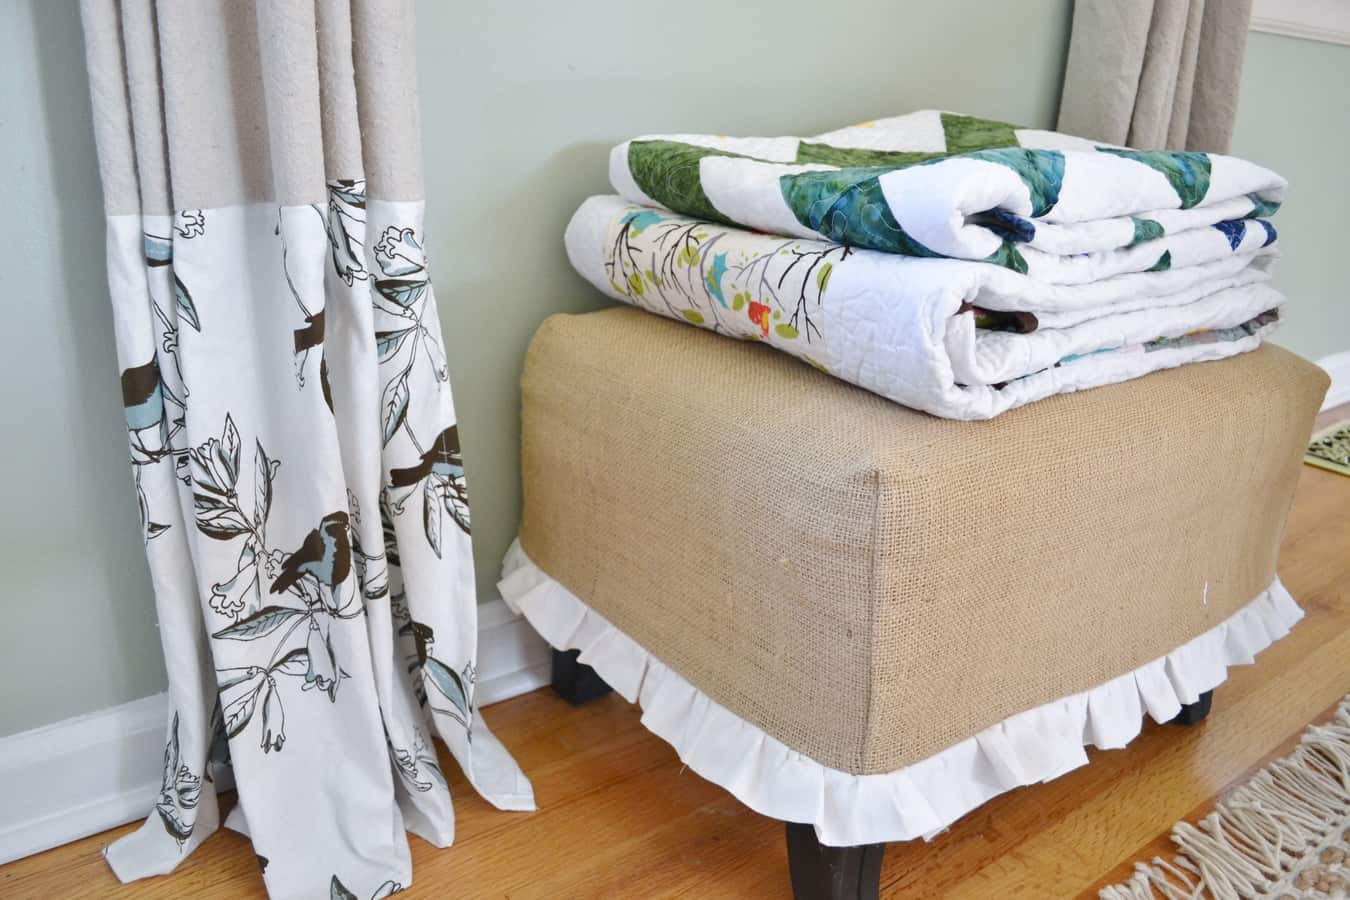 Burlap Decorating Ideas #1: Burlap Ottoman Cover